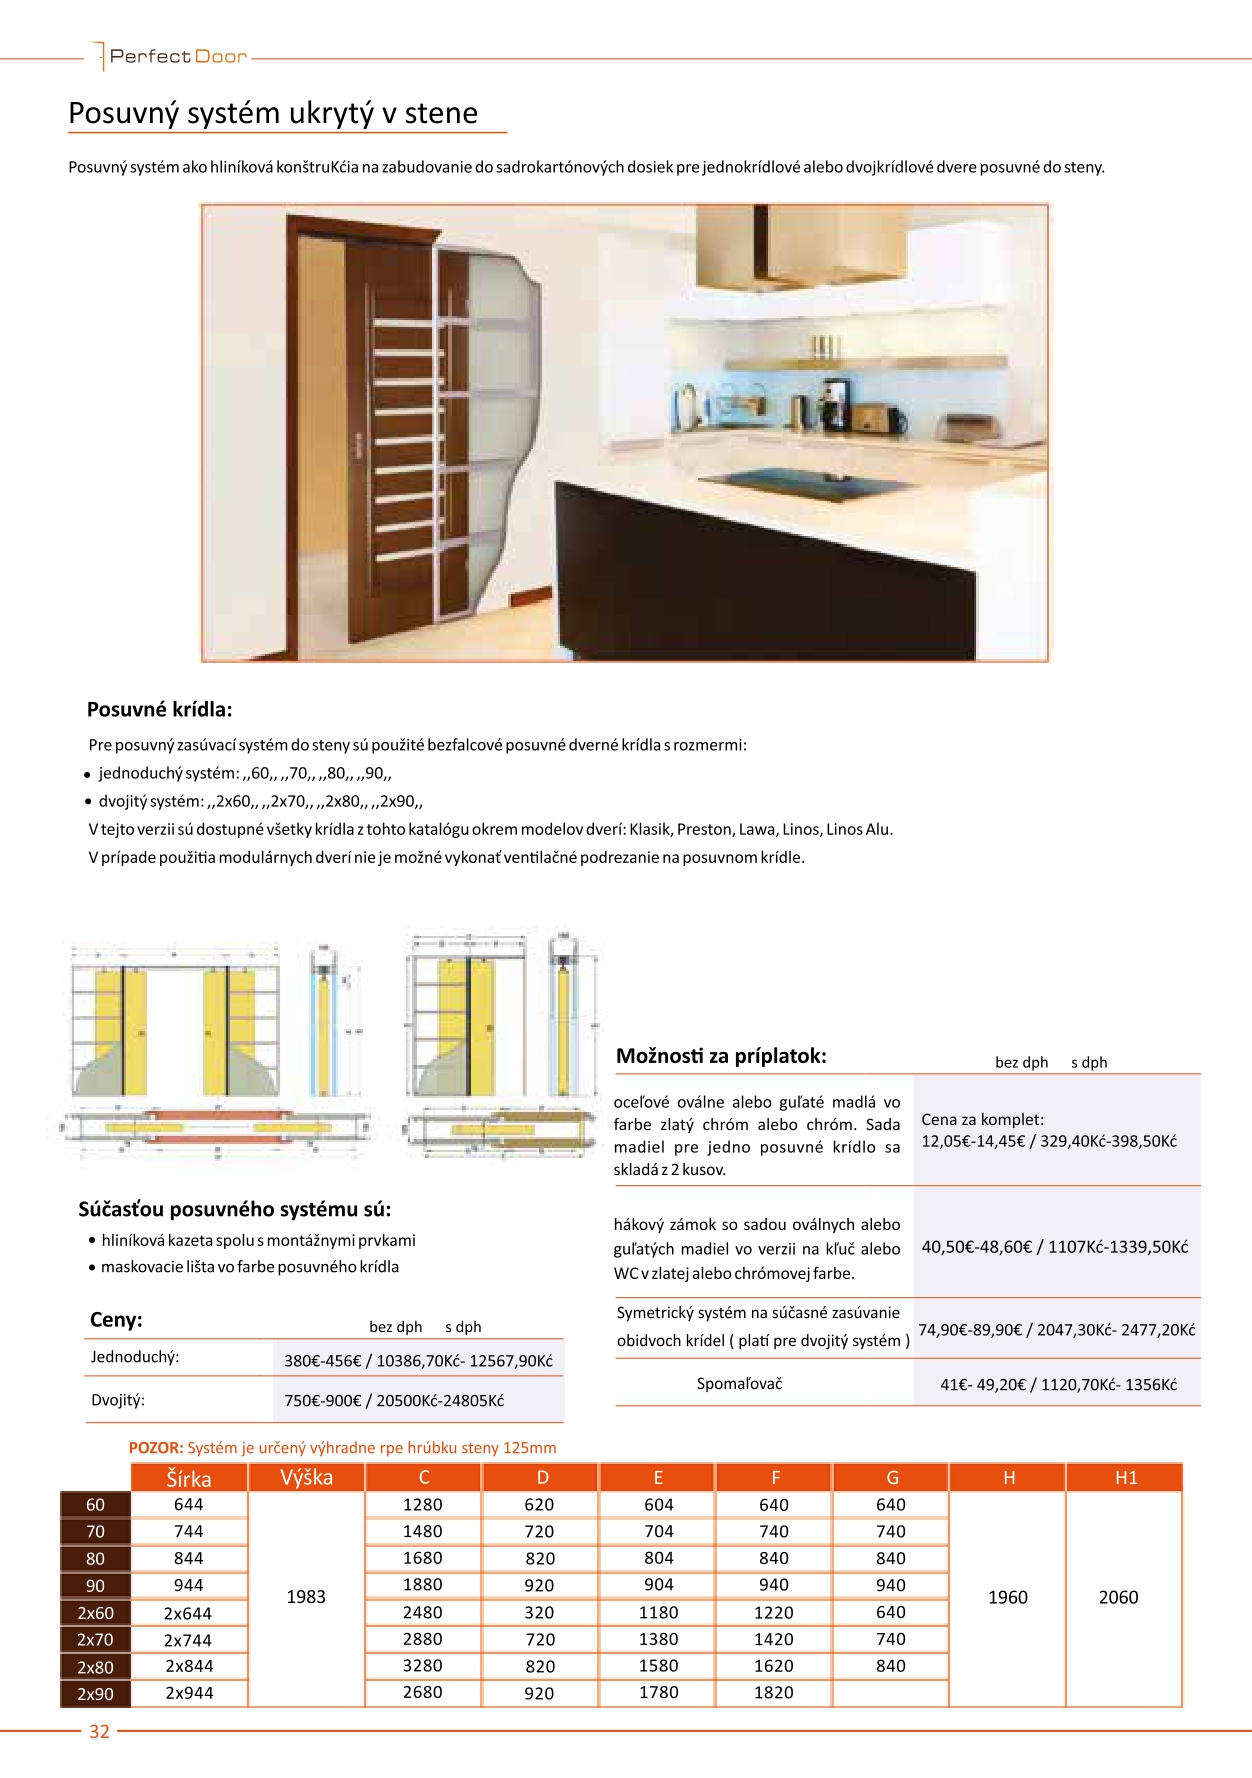 Perfectdoor katalog  1 2019 pages-to-jpg-0032